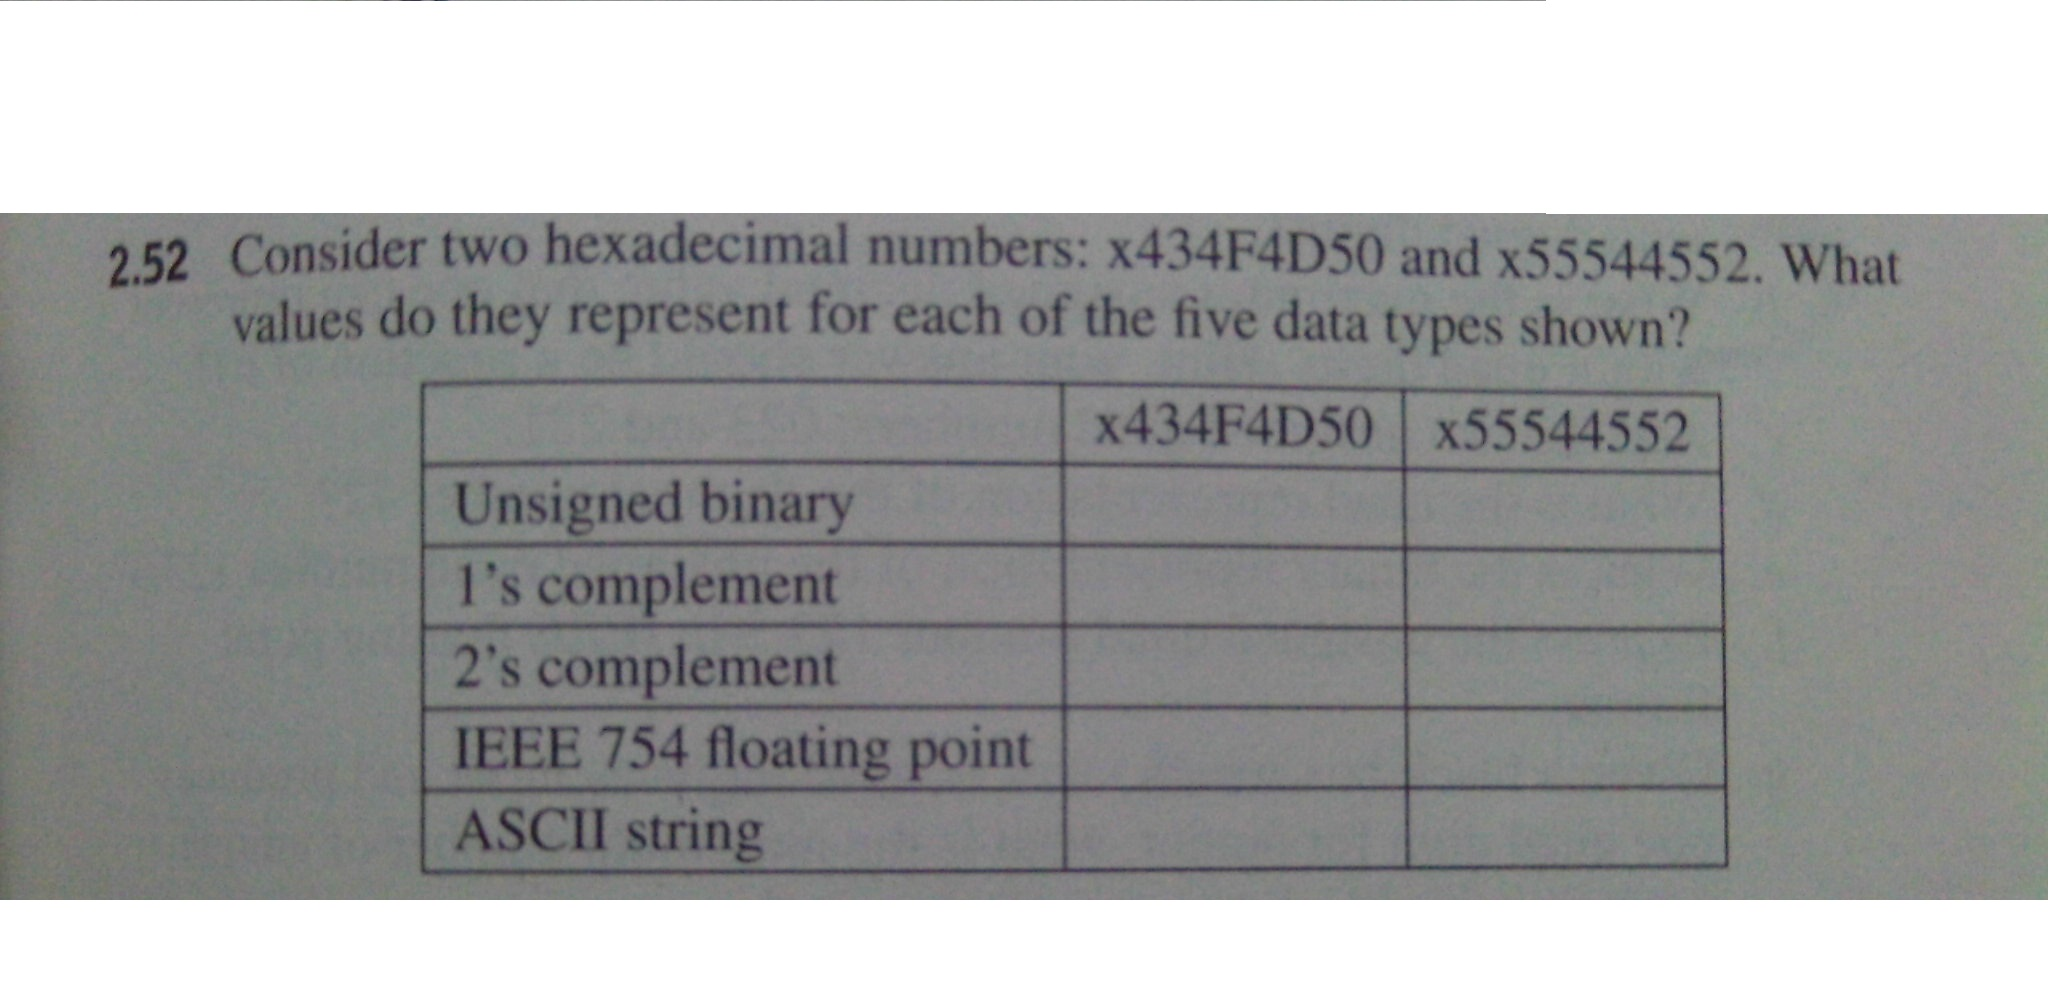 Consider two hexadecimal numbers: x434F4D50 and x5